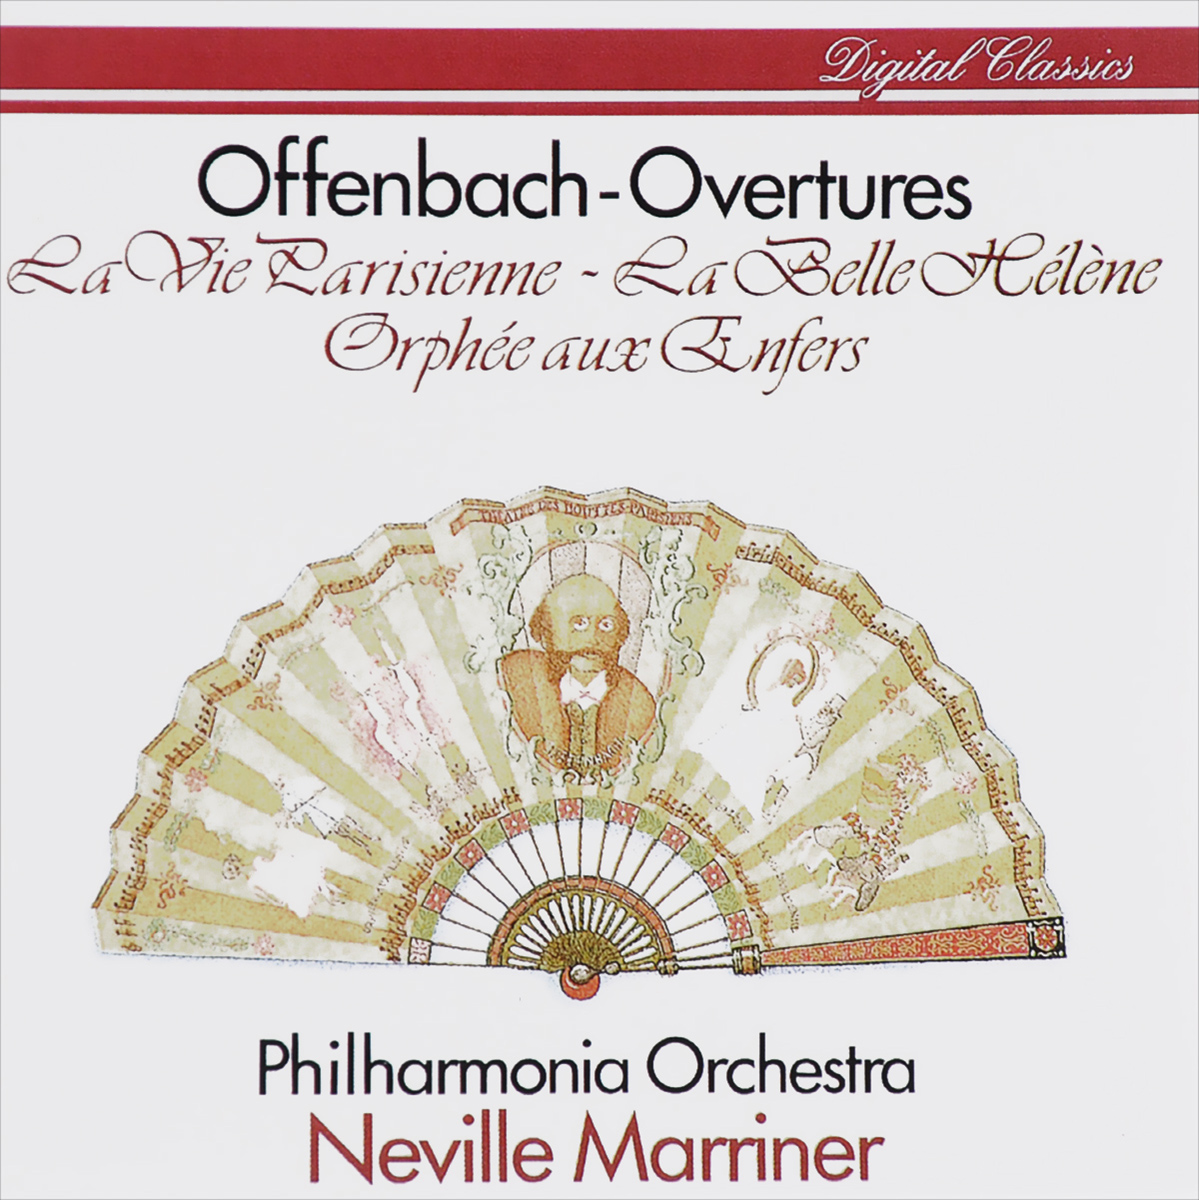 Нэвилл Мерринер,Philharmonia Orchestra Neville Marriner. Offenbach. Overtures нэвилл мерринер гидон кремер academy of st martin in the fields neville marriner beethoven violin concerto